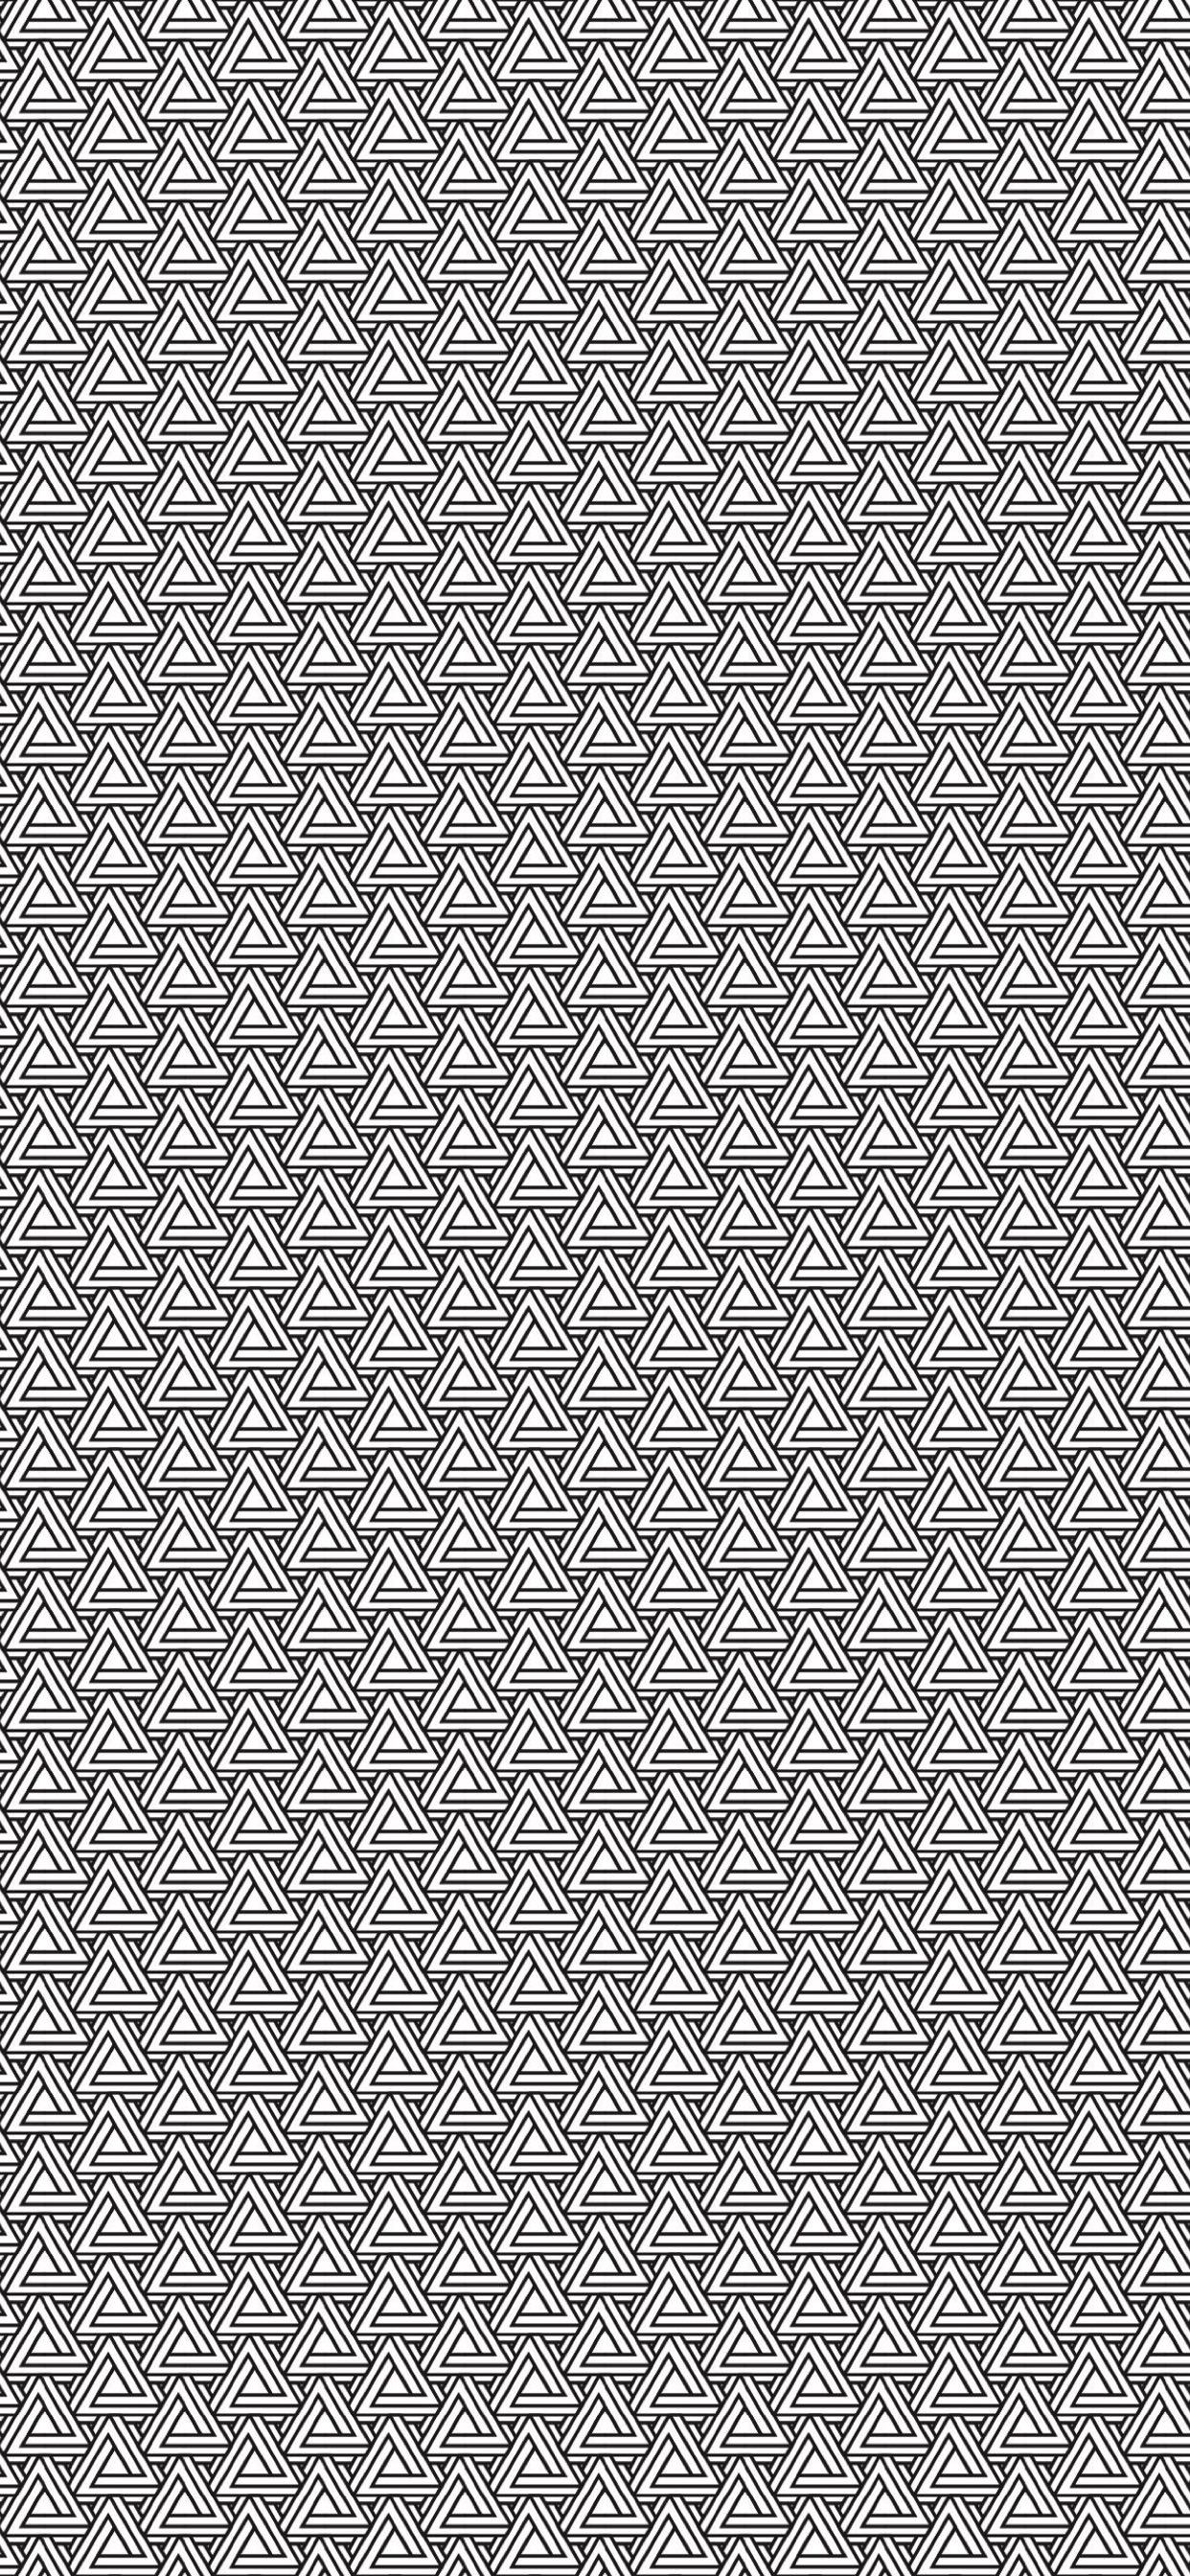 Pattern Triangle Black And White Wallpapersc Iphone Xs Max